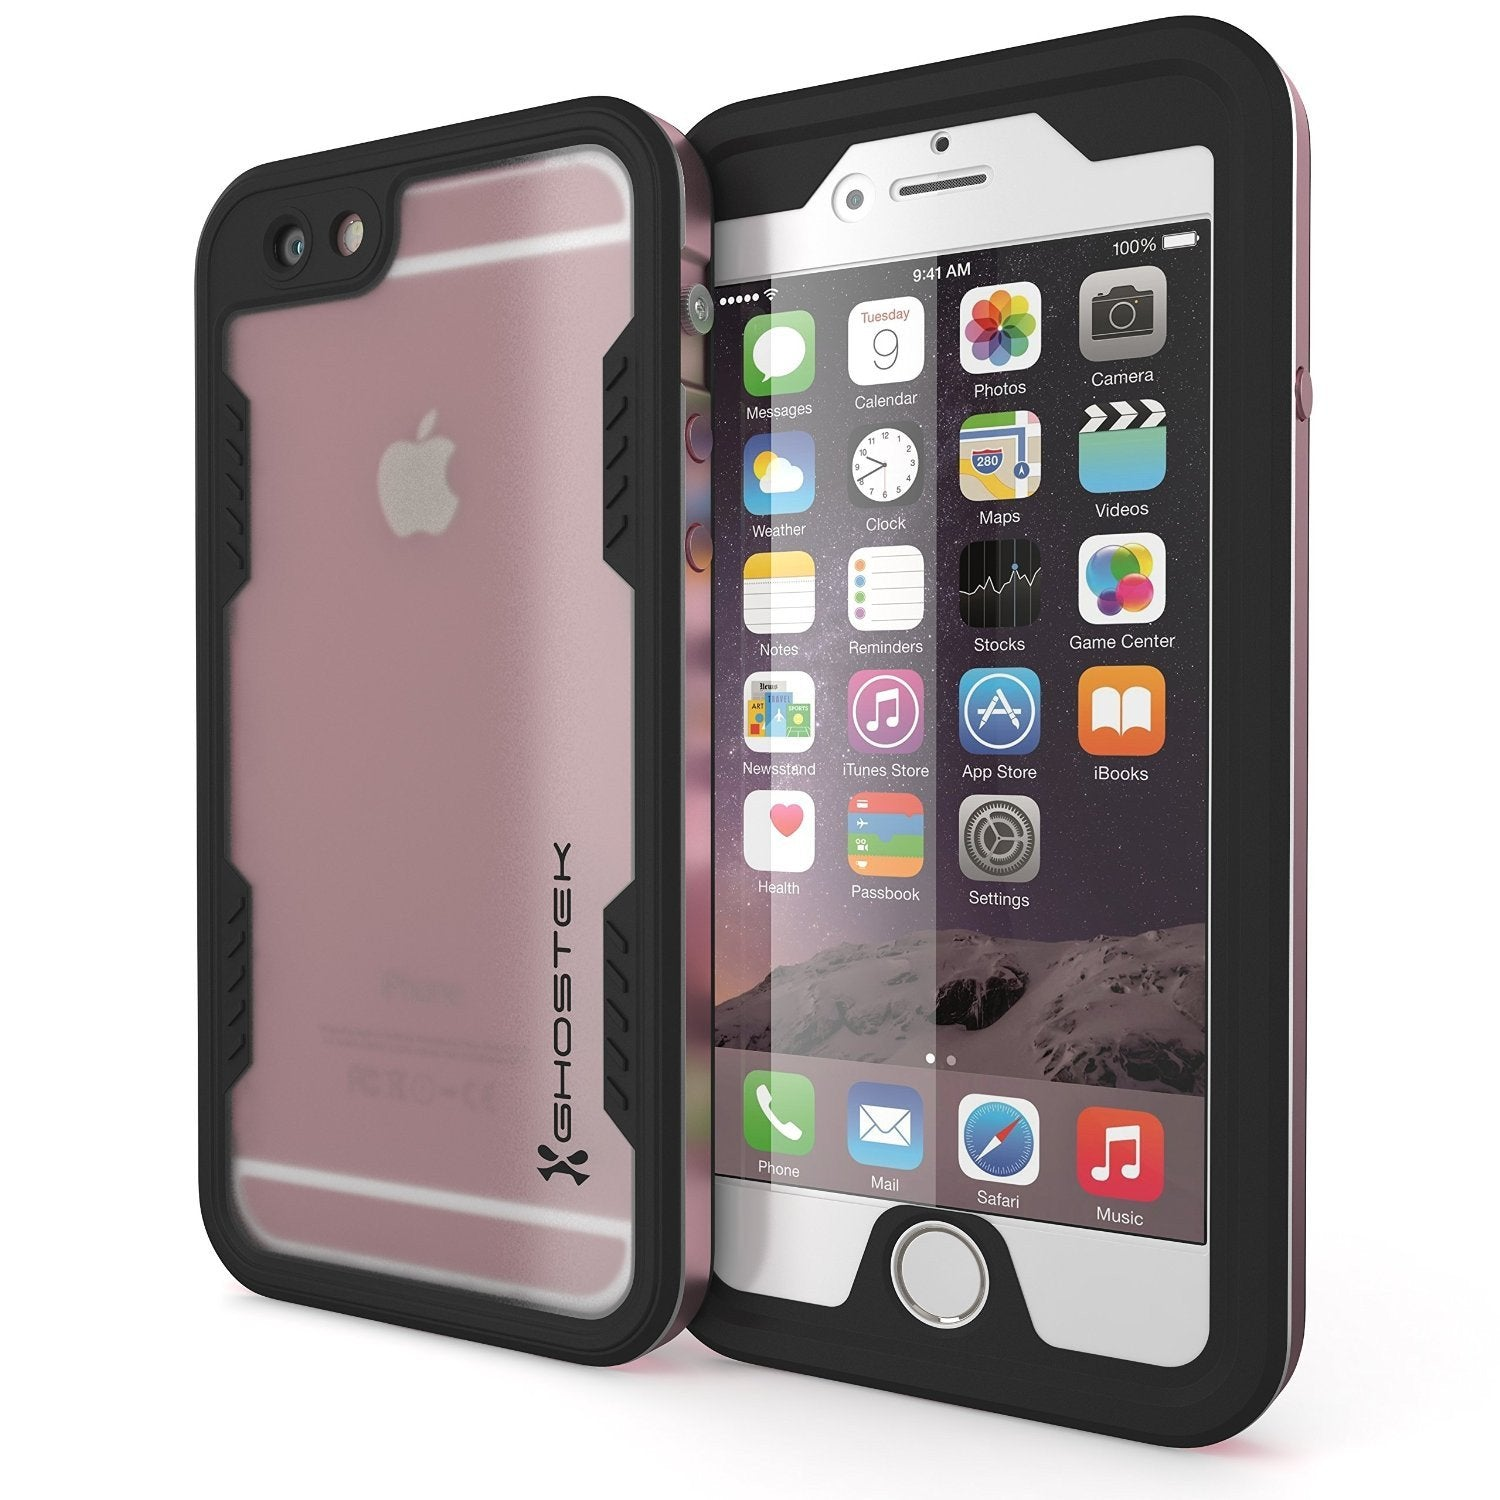 iPhone 6S/6 Waterproof Case, Ghostek Atomic 2.0 Space Pink W/ Attached Screen Protector, Slim Fitted